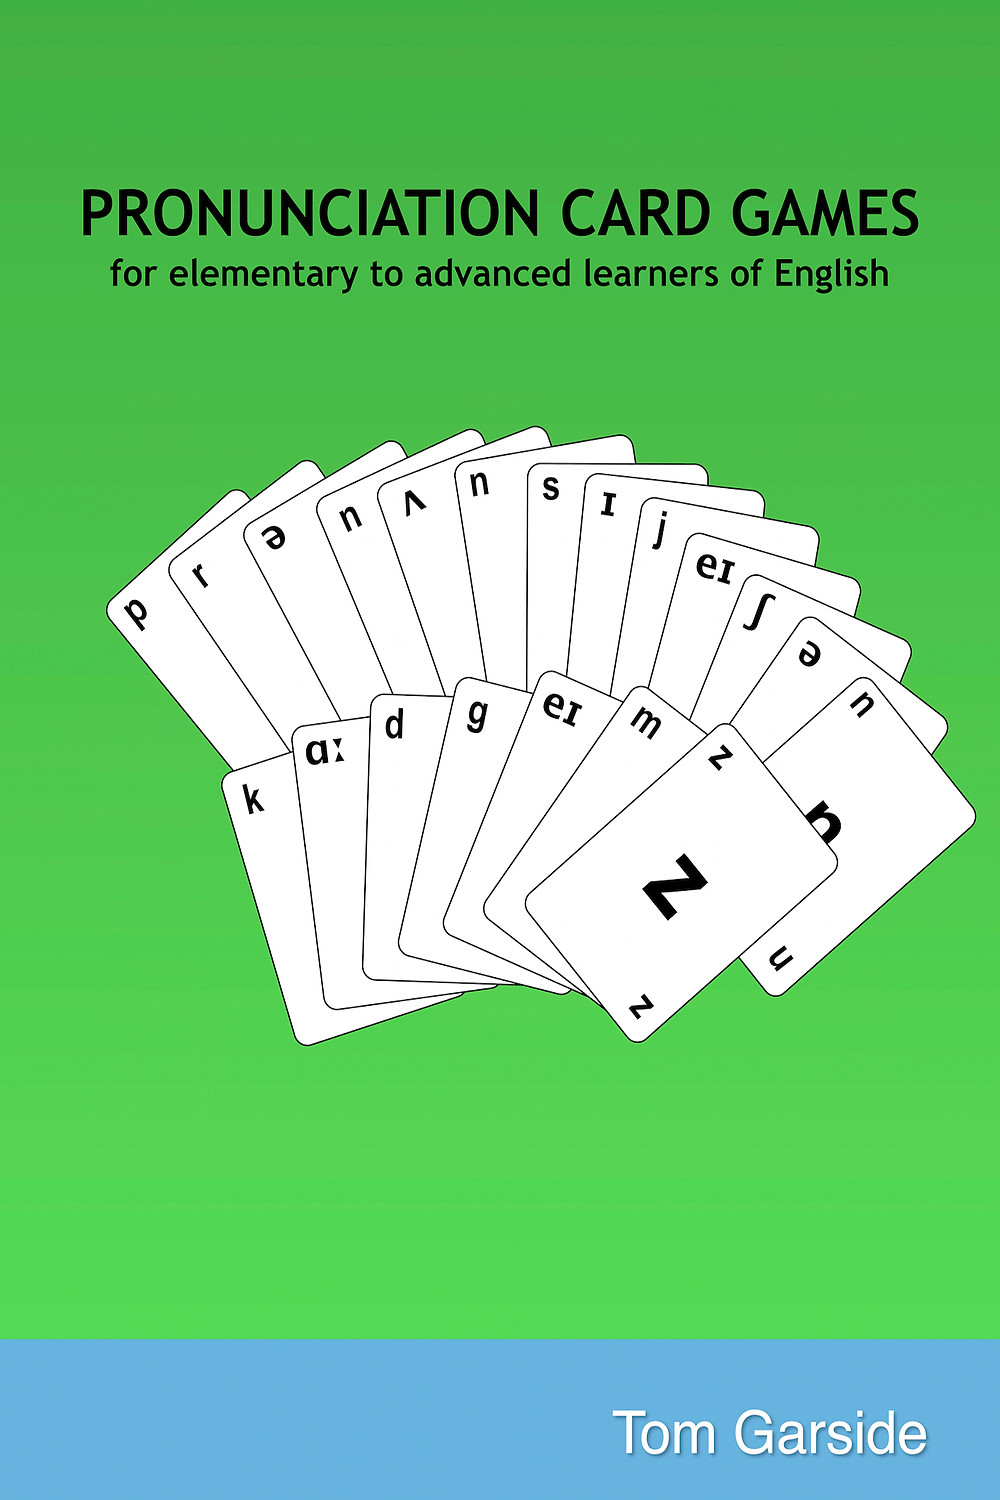 Prounciation resources, phonology materials, teaching materials for pronunciation